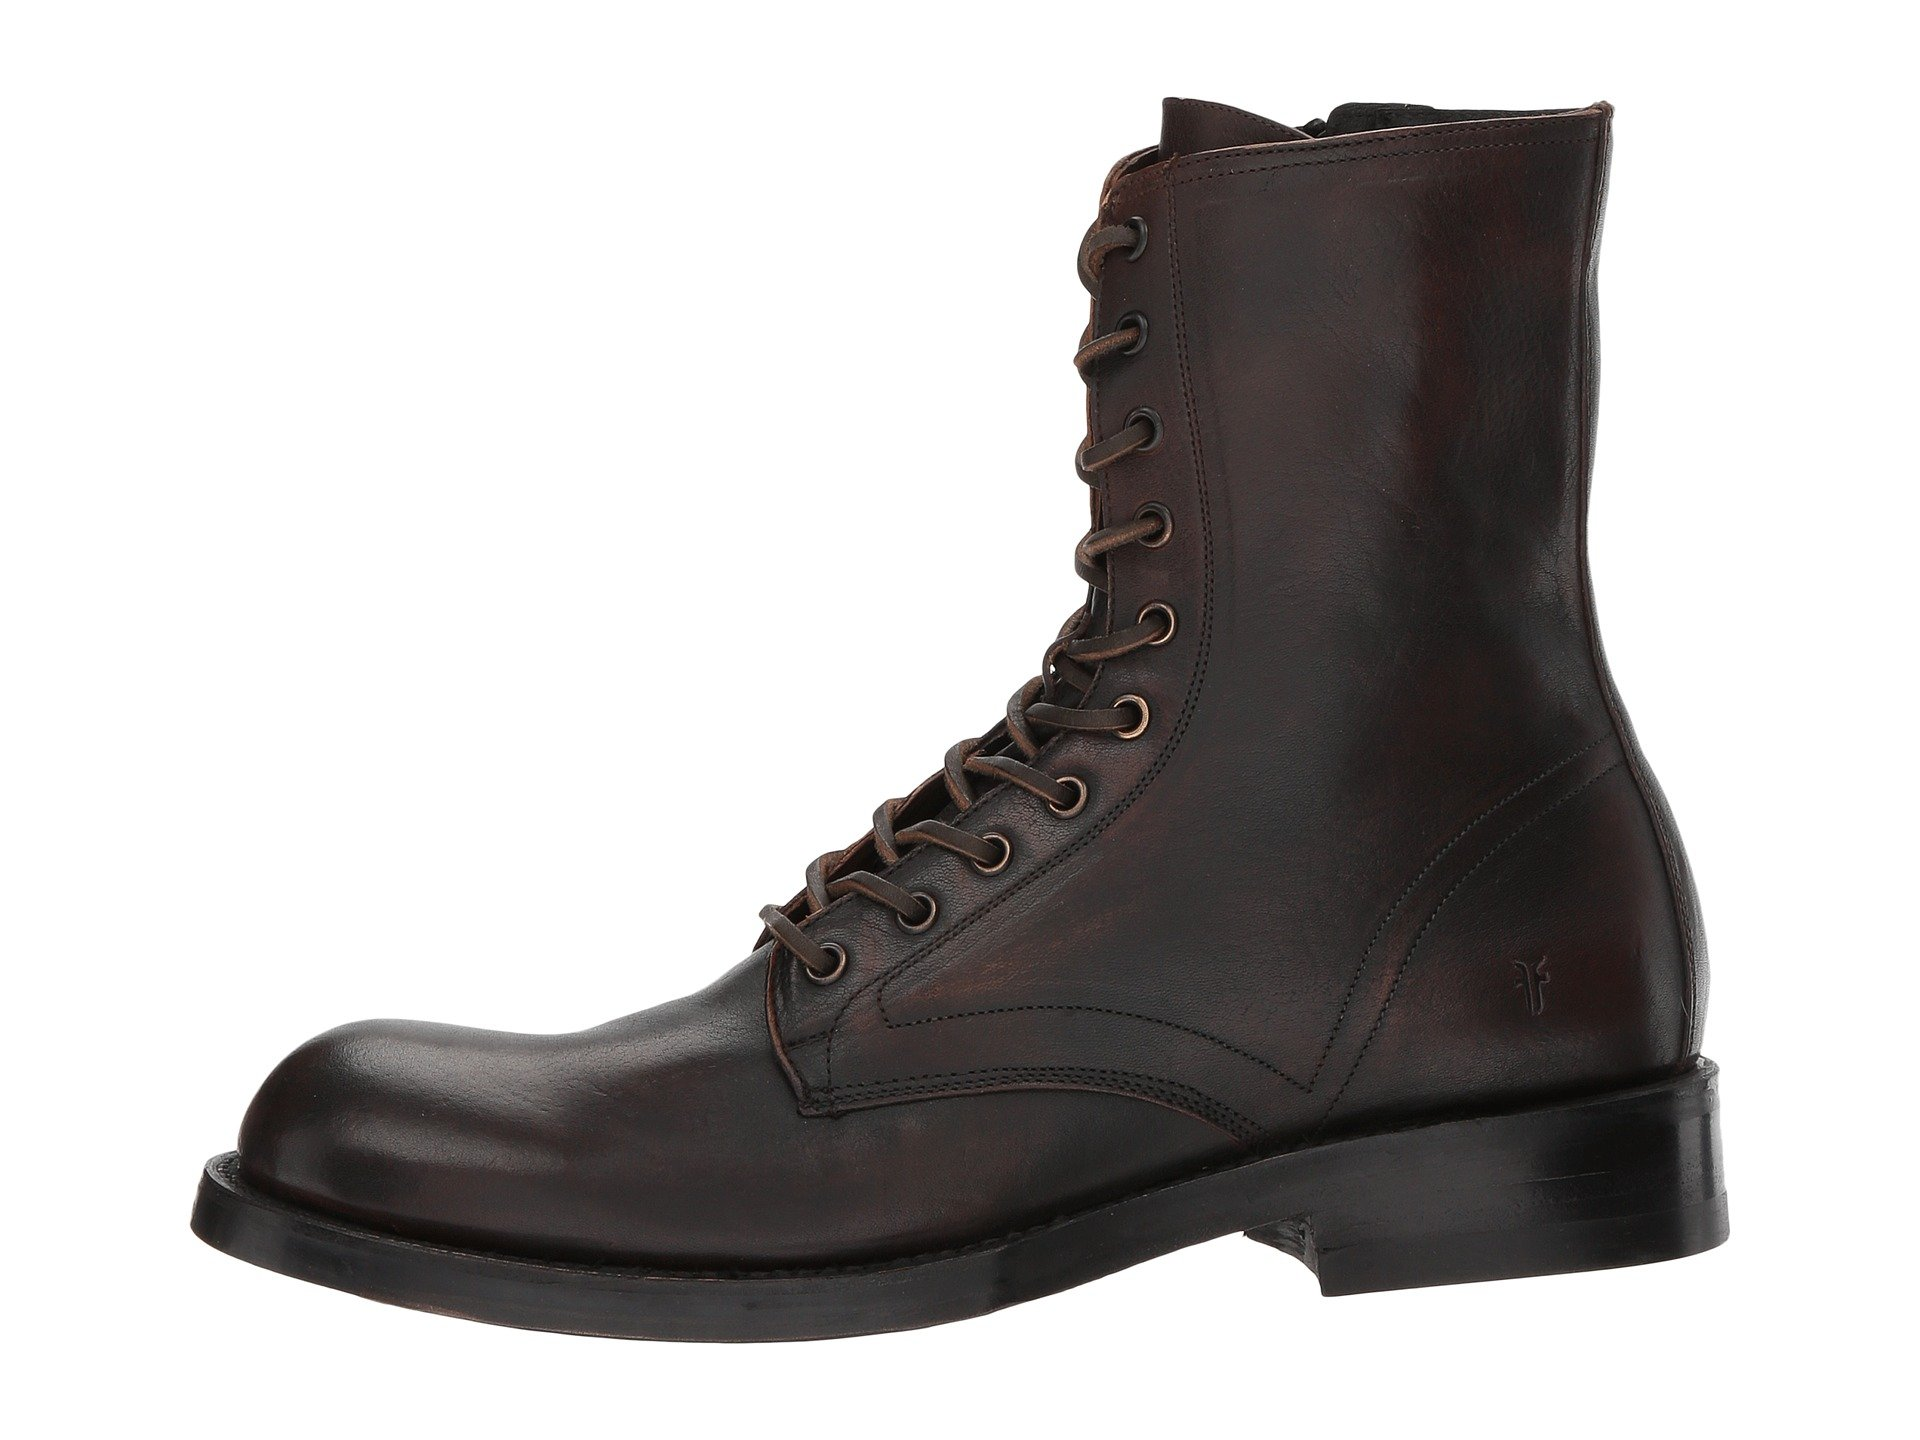 1920x1440 Frye Folsom Combat Colorselect A Size The Rugged Folsom